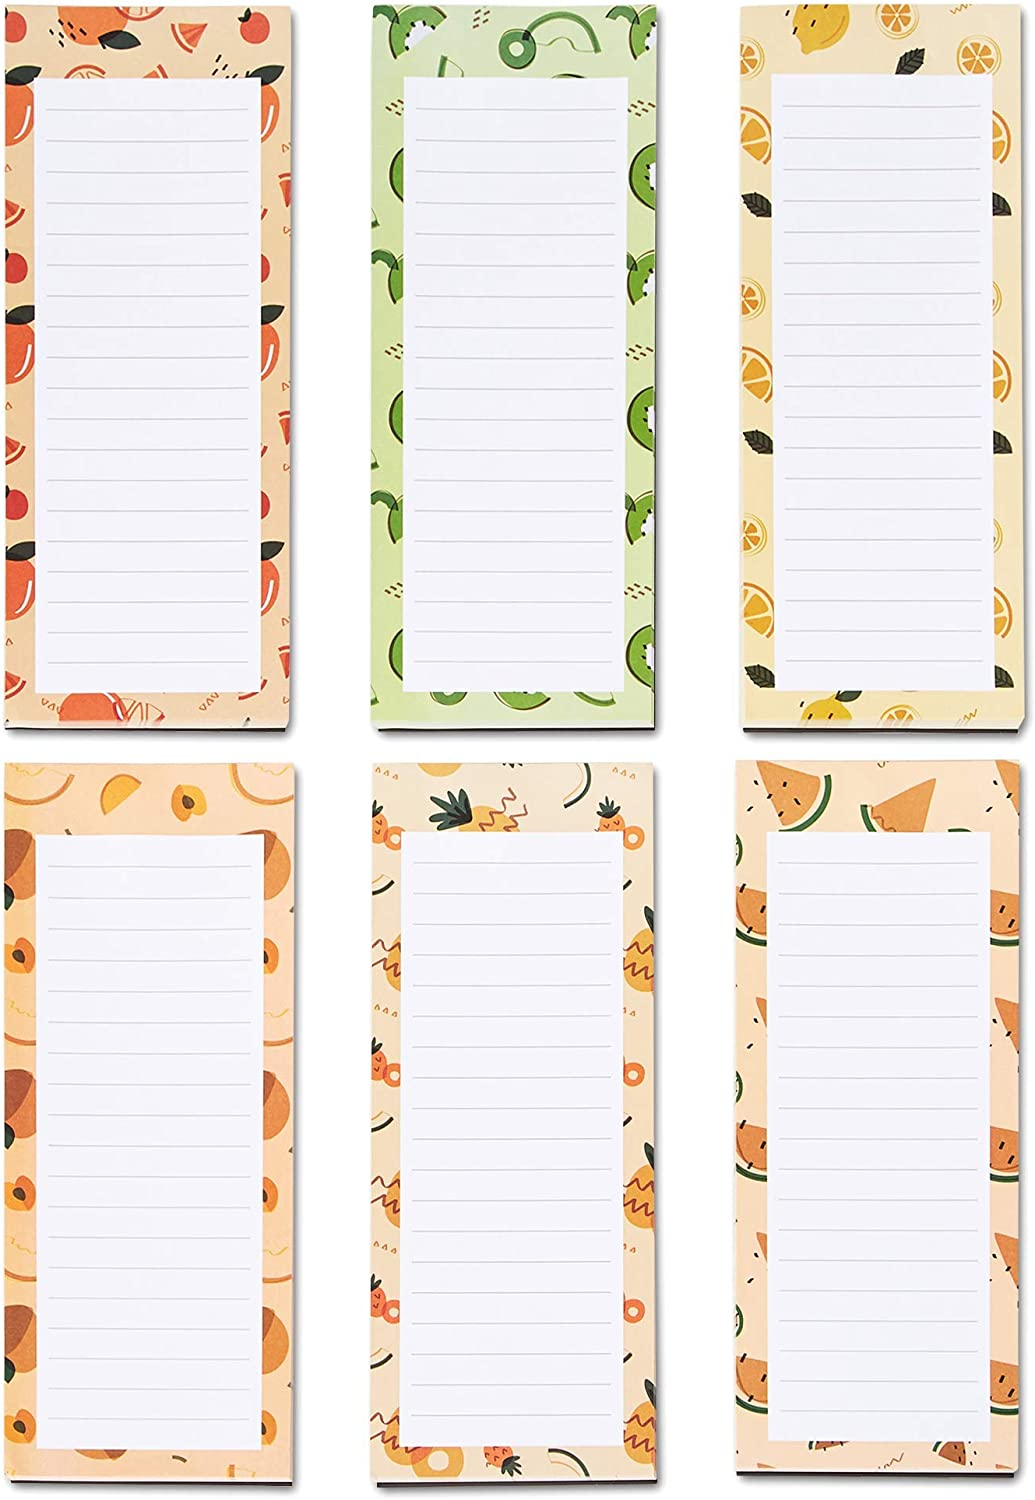 Grocery List Magnet Pad for Fridge, 6-Pack Magnetic Note Pads Lists, 60 Sheets Per Pad, 6 Cute Fruits Designs, Full Magnet Back To-Do-List Notepads